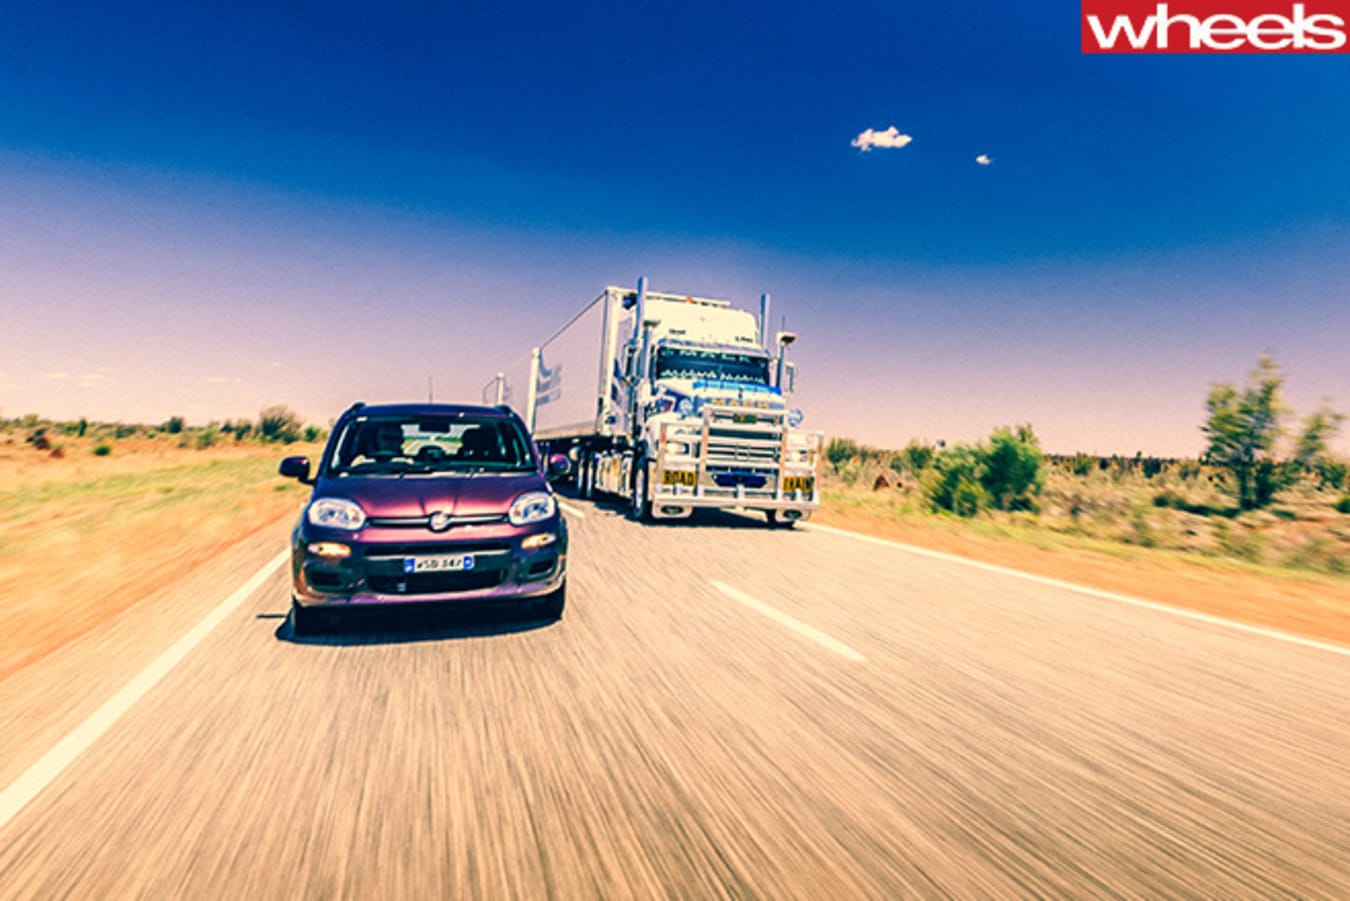 Fiat -panda -driving -northern -territory -unrestricted -speed -limits